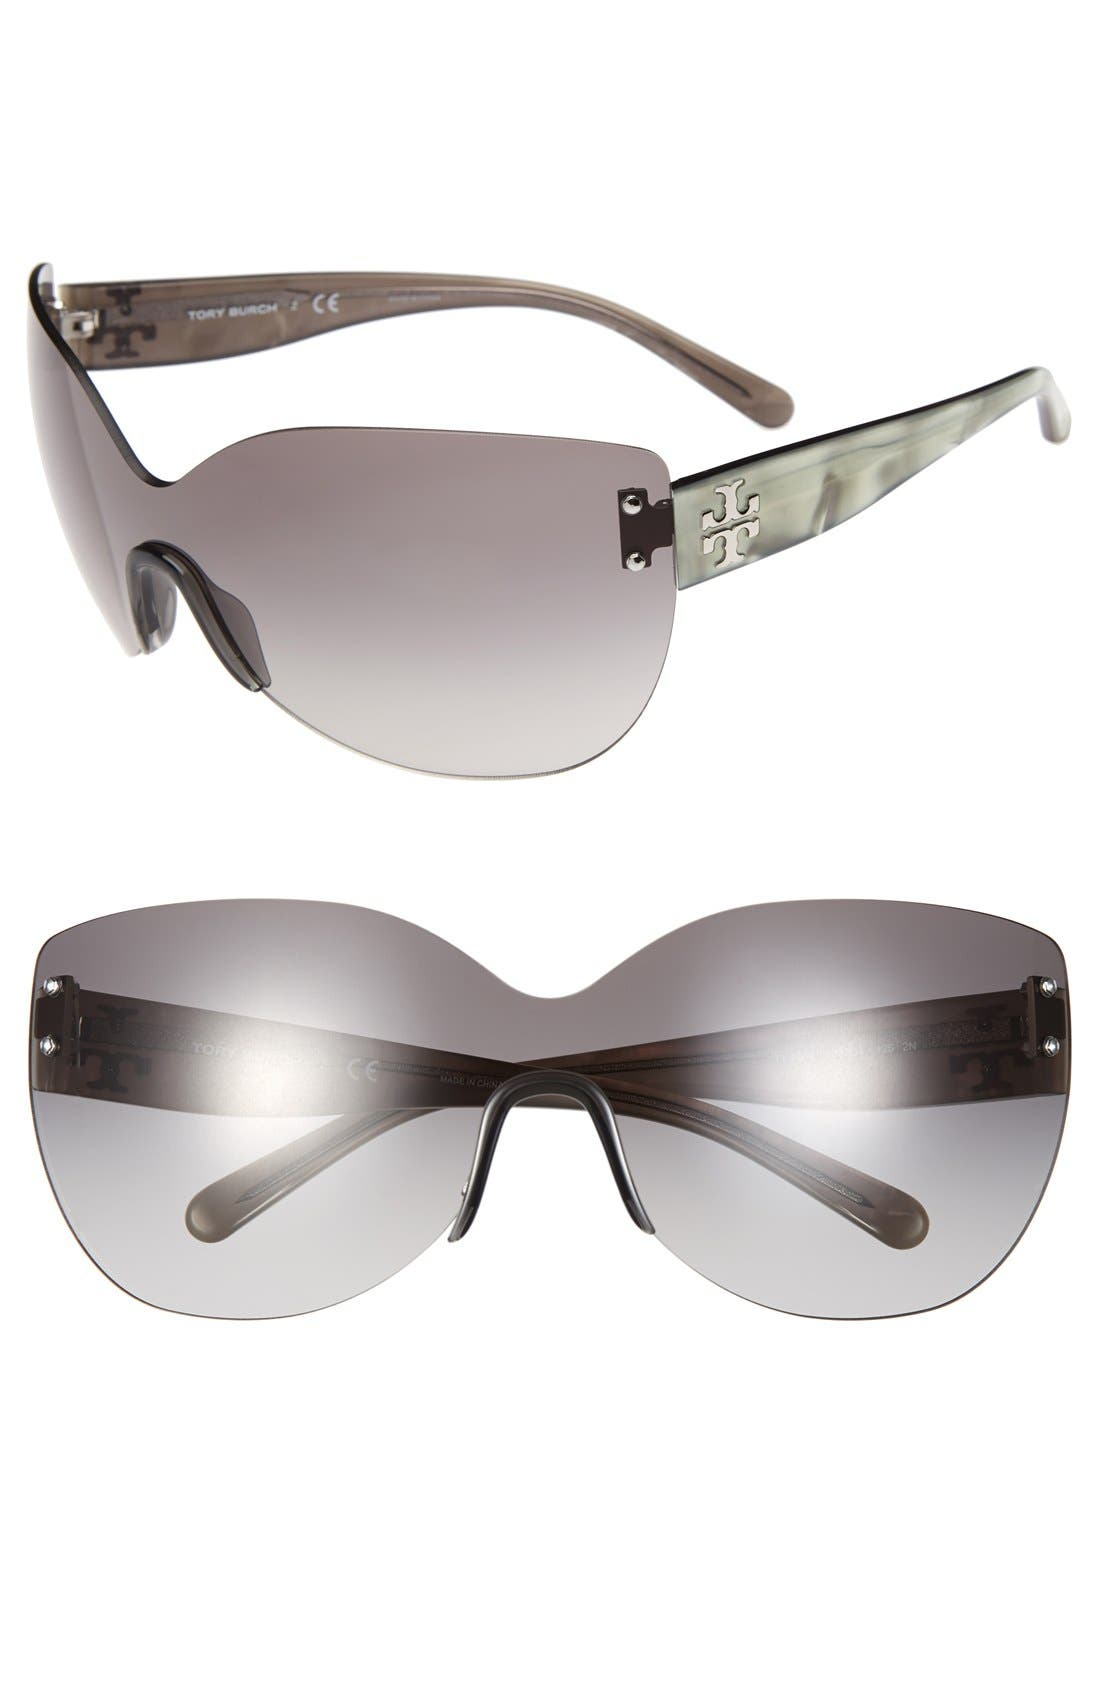 Alternate Image 1 Selected - Tory Burch 'Pilot' 70mm Wrap Sunglasses